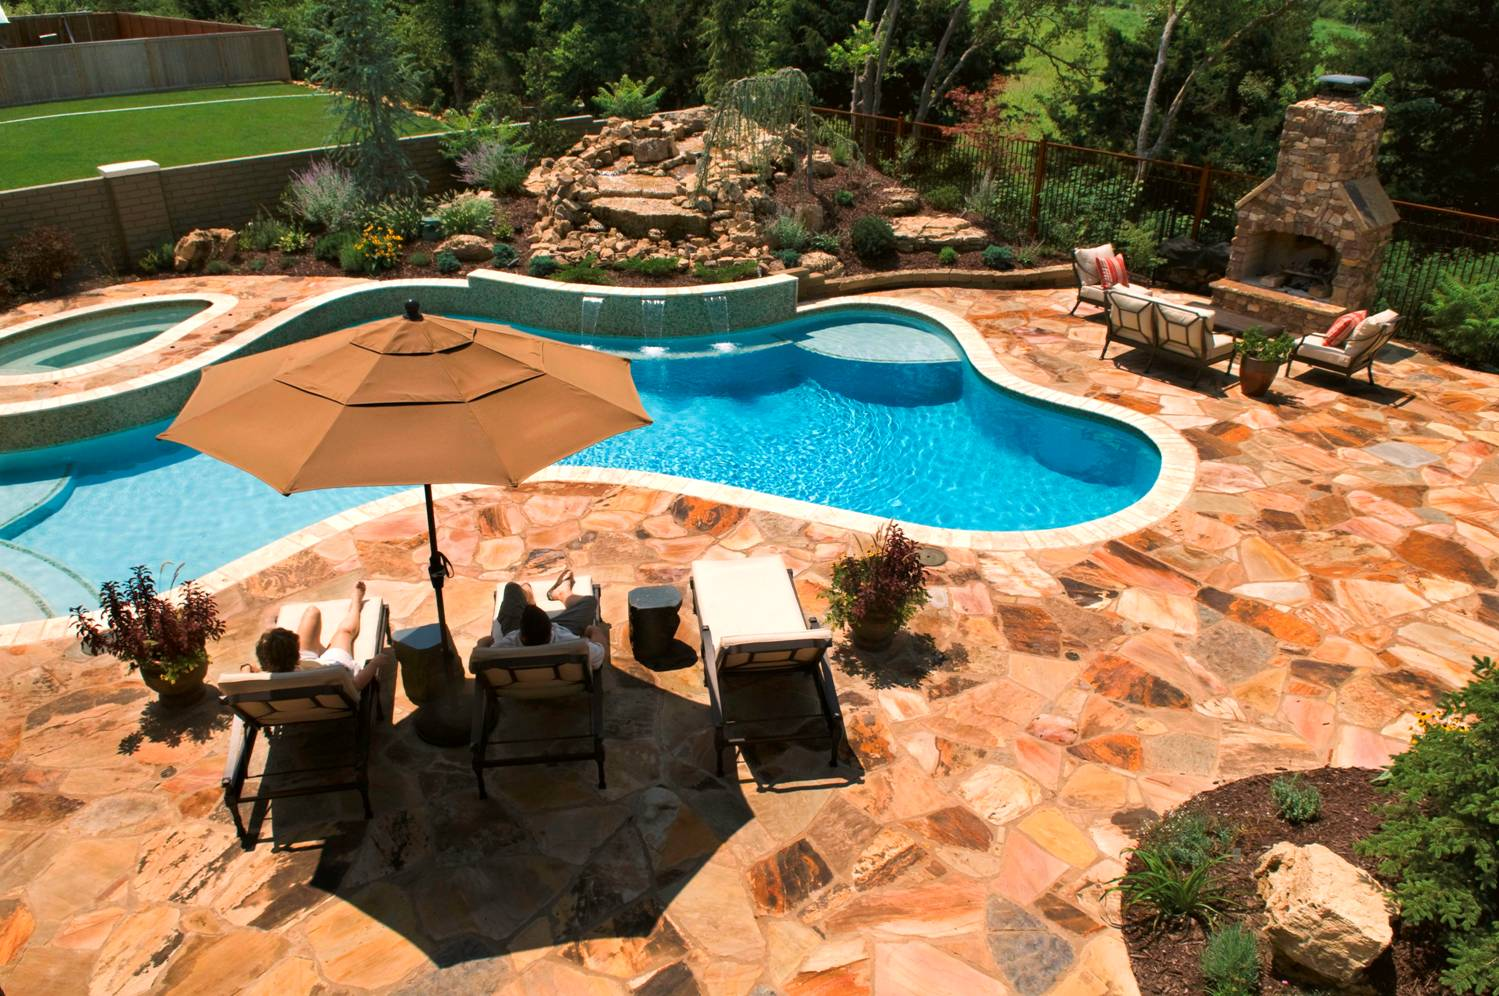 Attractive Decorating for Large Pool Deck Ideas with Best Stone